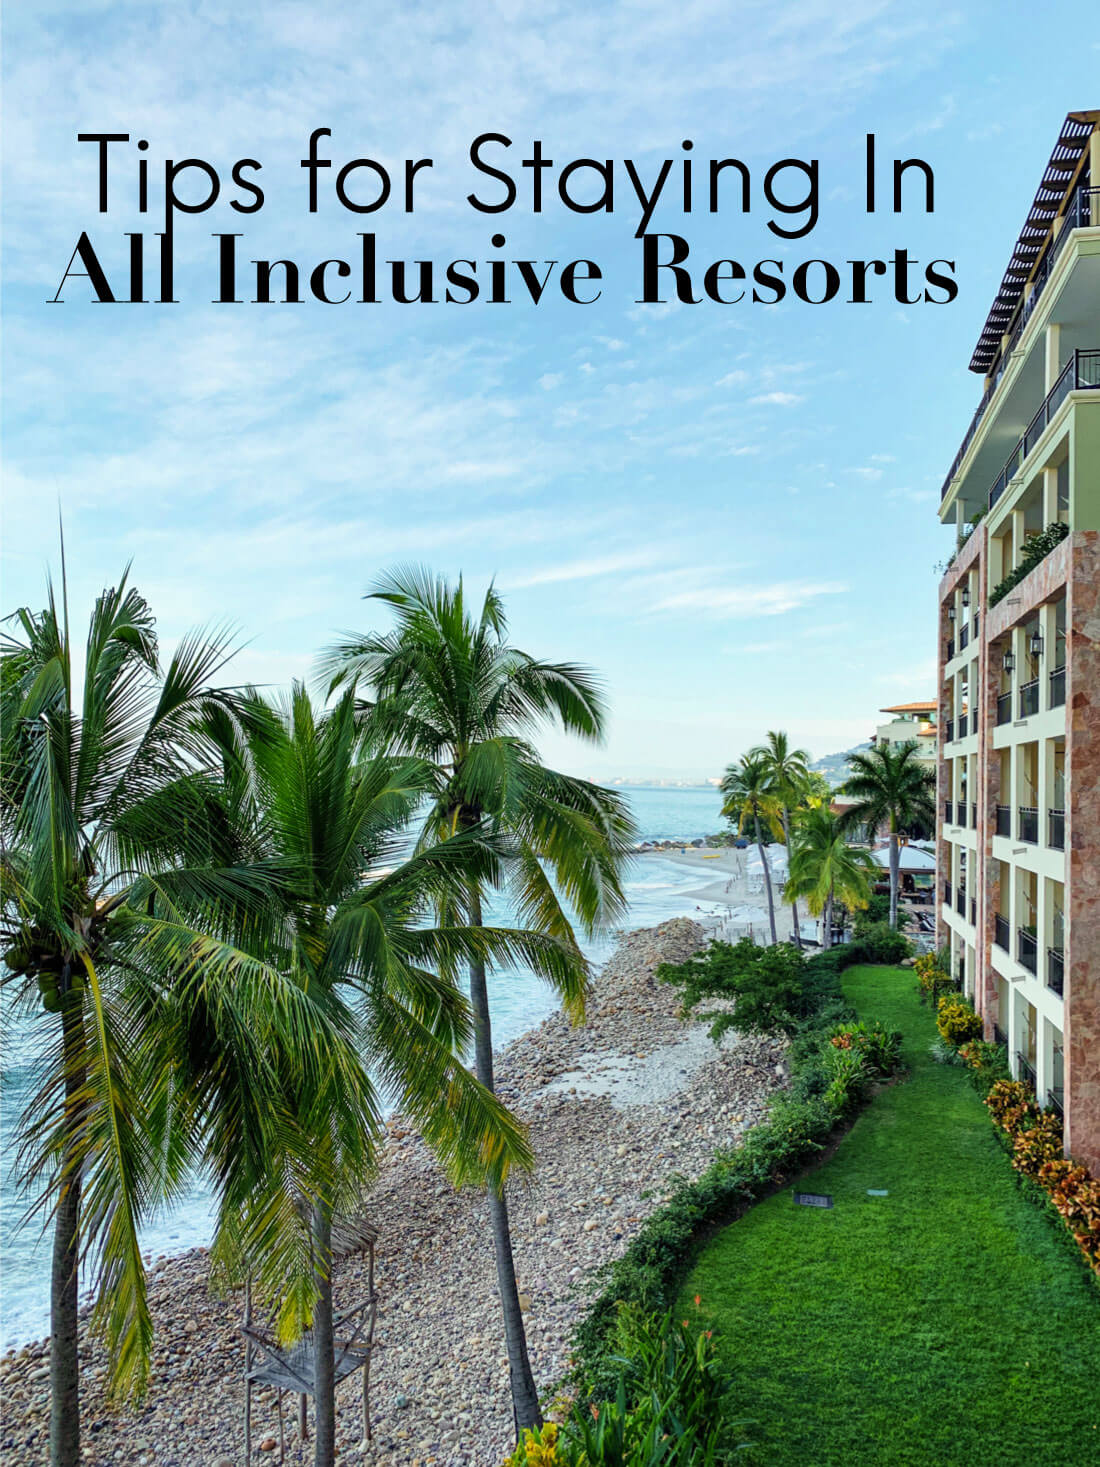 Tips for staying in All Inclusive Resorts - things to keep in mind for your next trip.